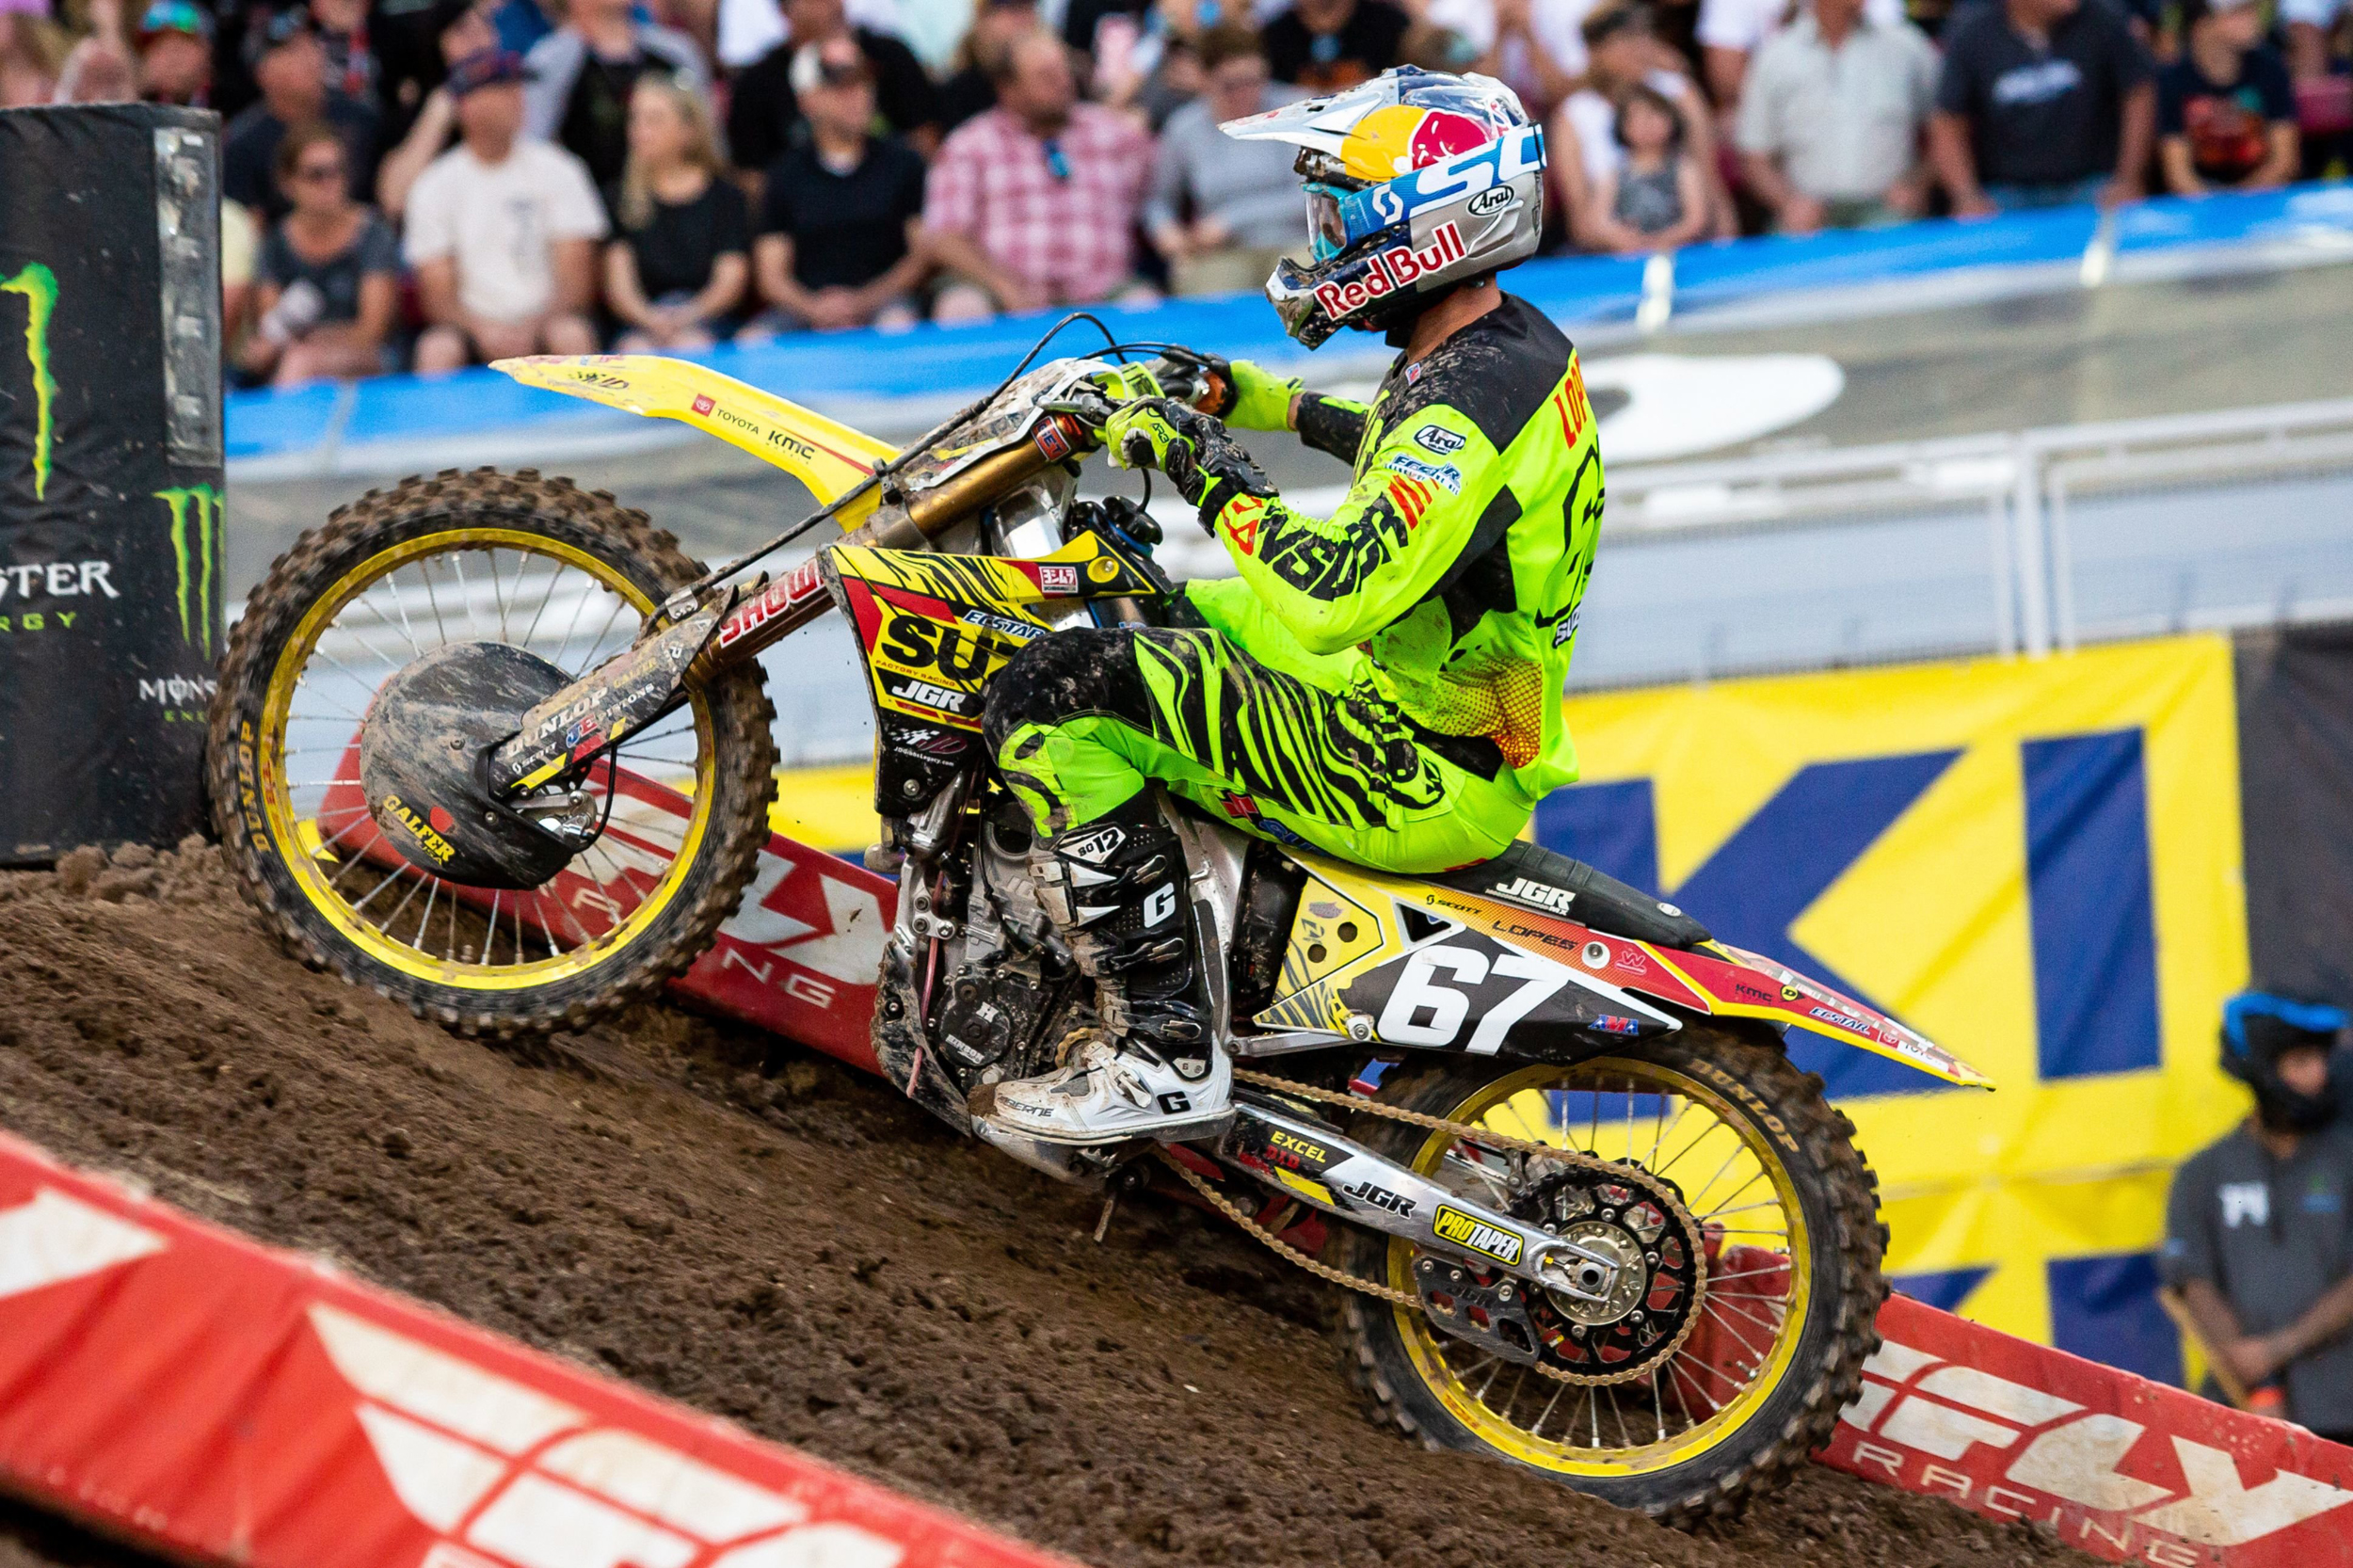 Enzo Lopes (#67) qualified well on his RM-Z250 - Las Vegas - Monster Energy Supercross